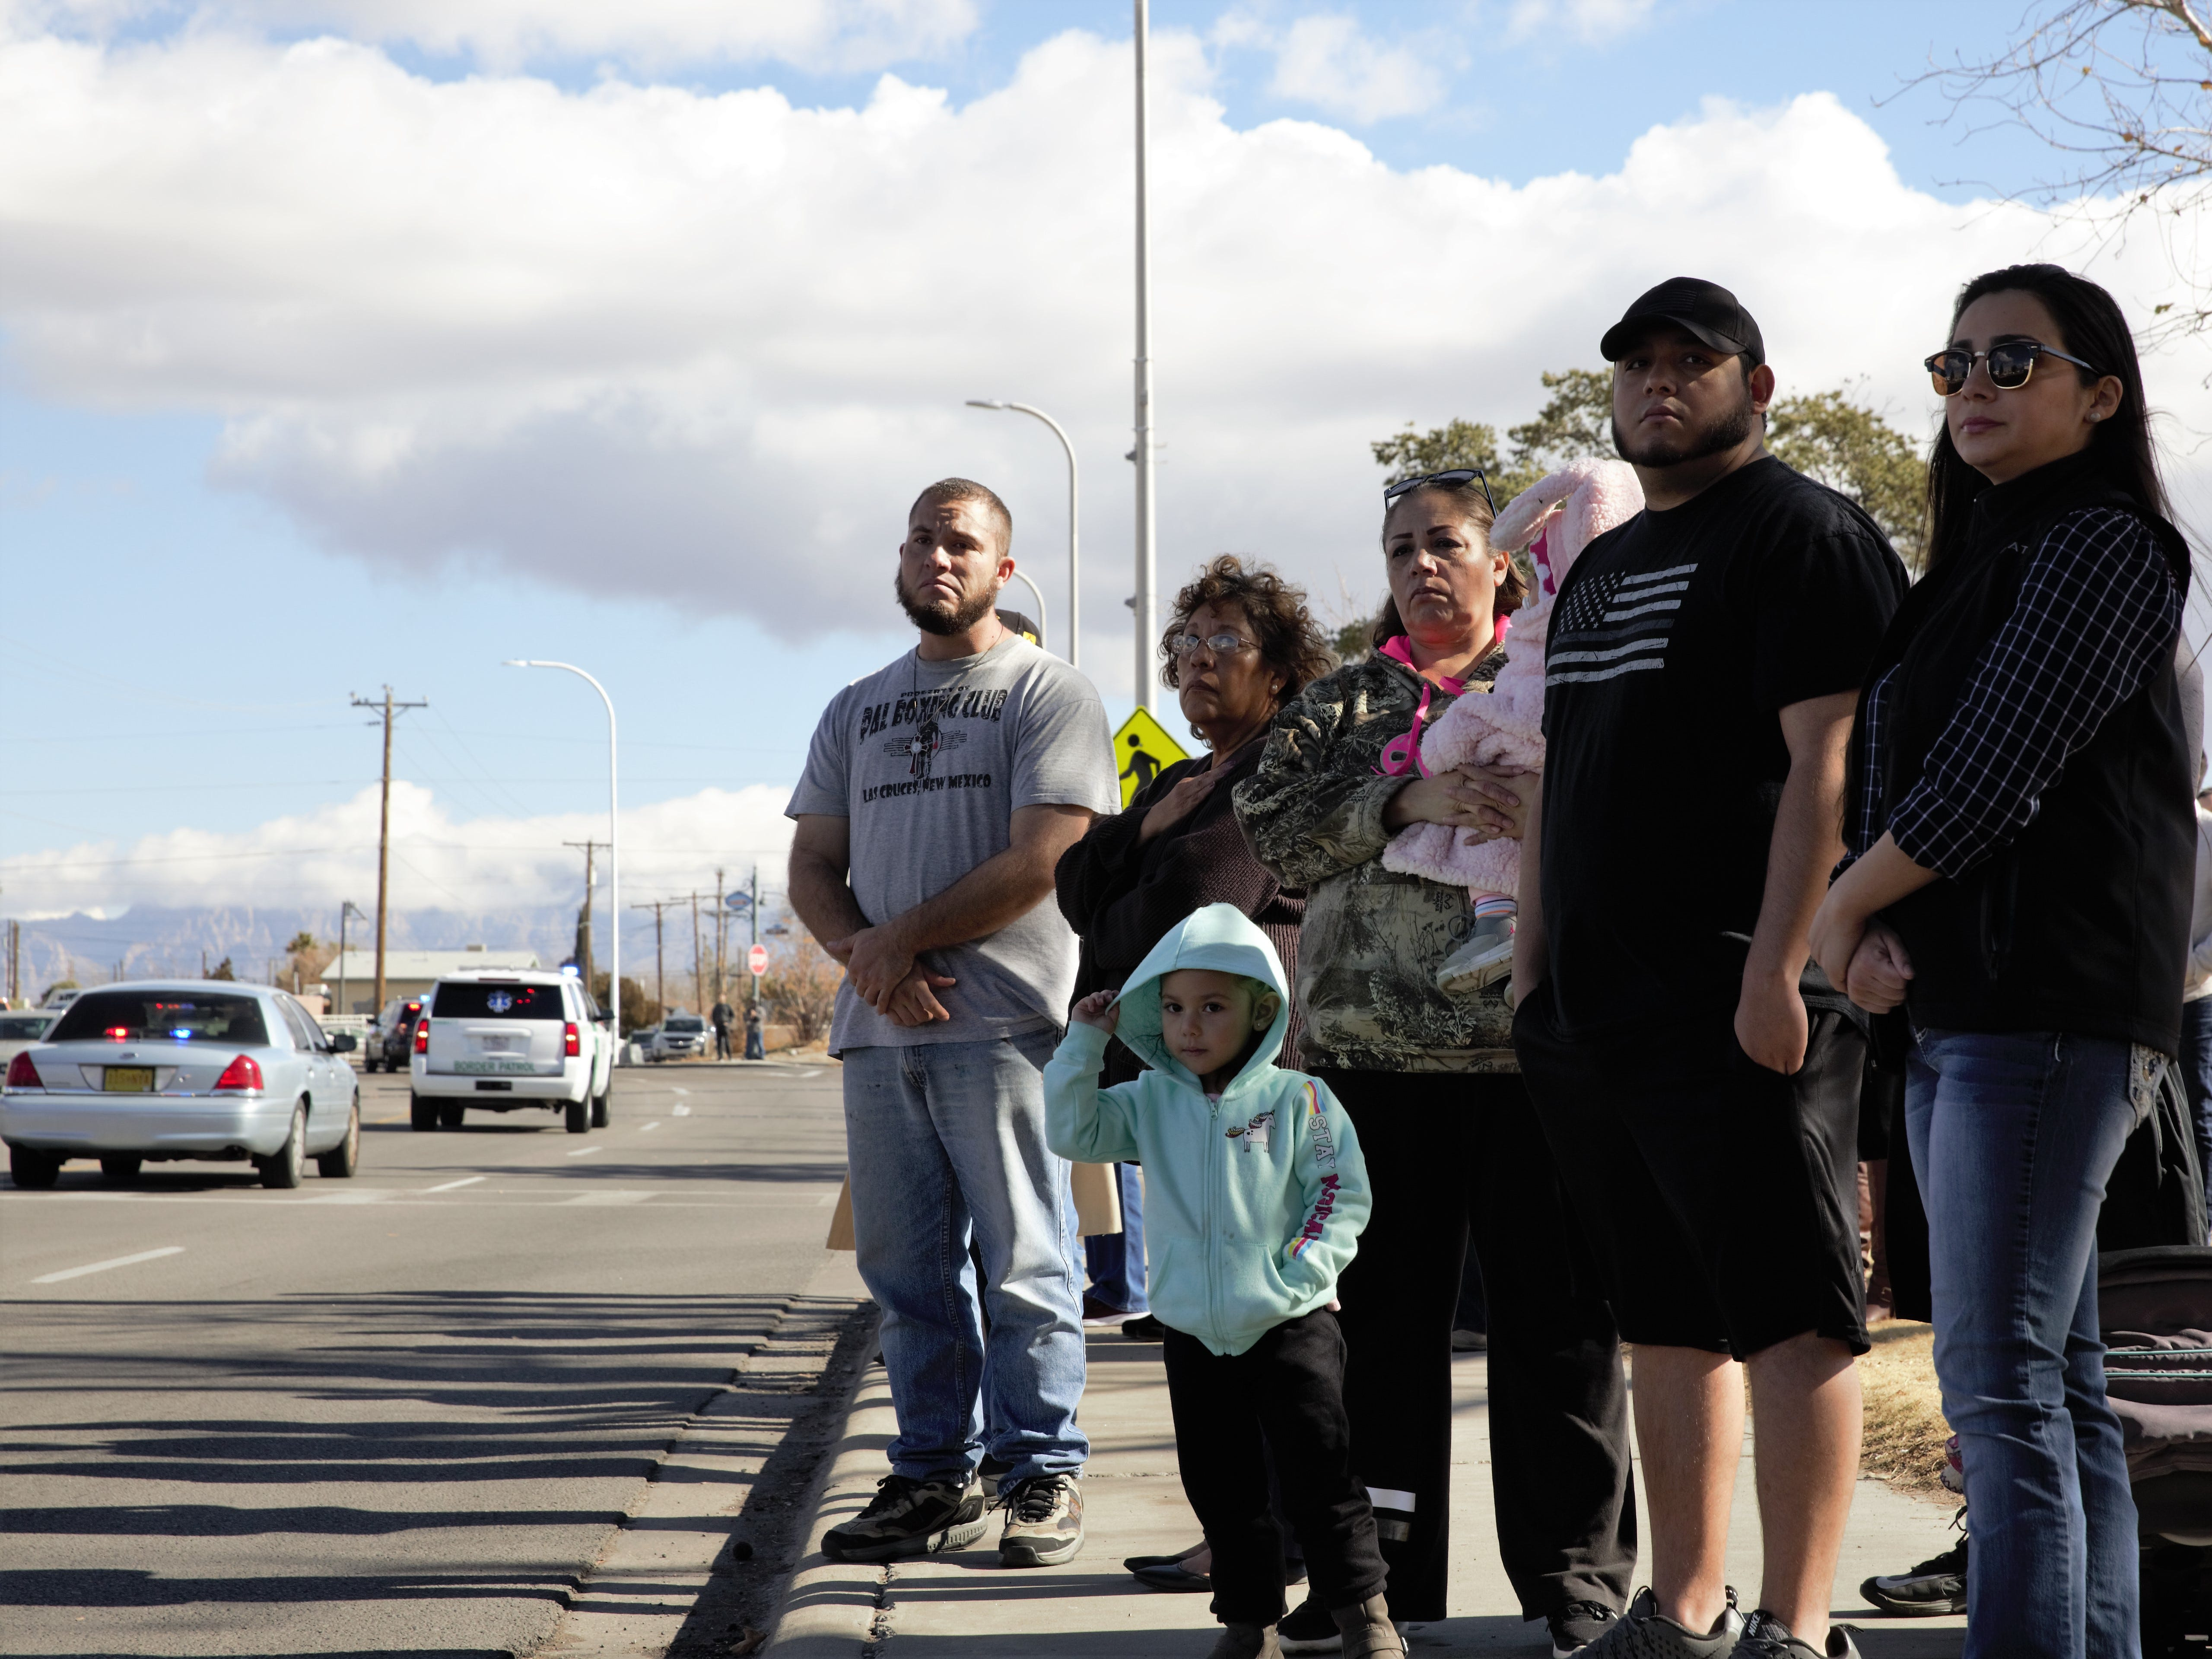 A group of well-wishers, including 3-year-old Gianelle Johnson, center, watches a funeral procession Friday, Jan. 11, 2019 for former Las Cruces Police Chief Jaime Montoya, who died from cancer recently.